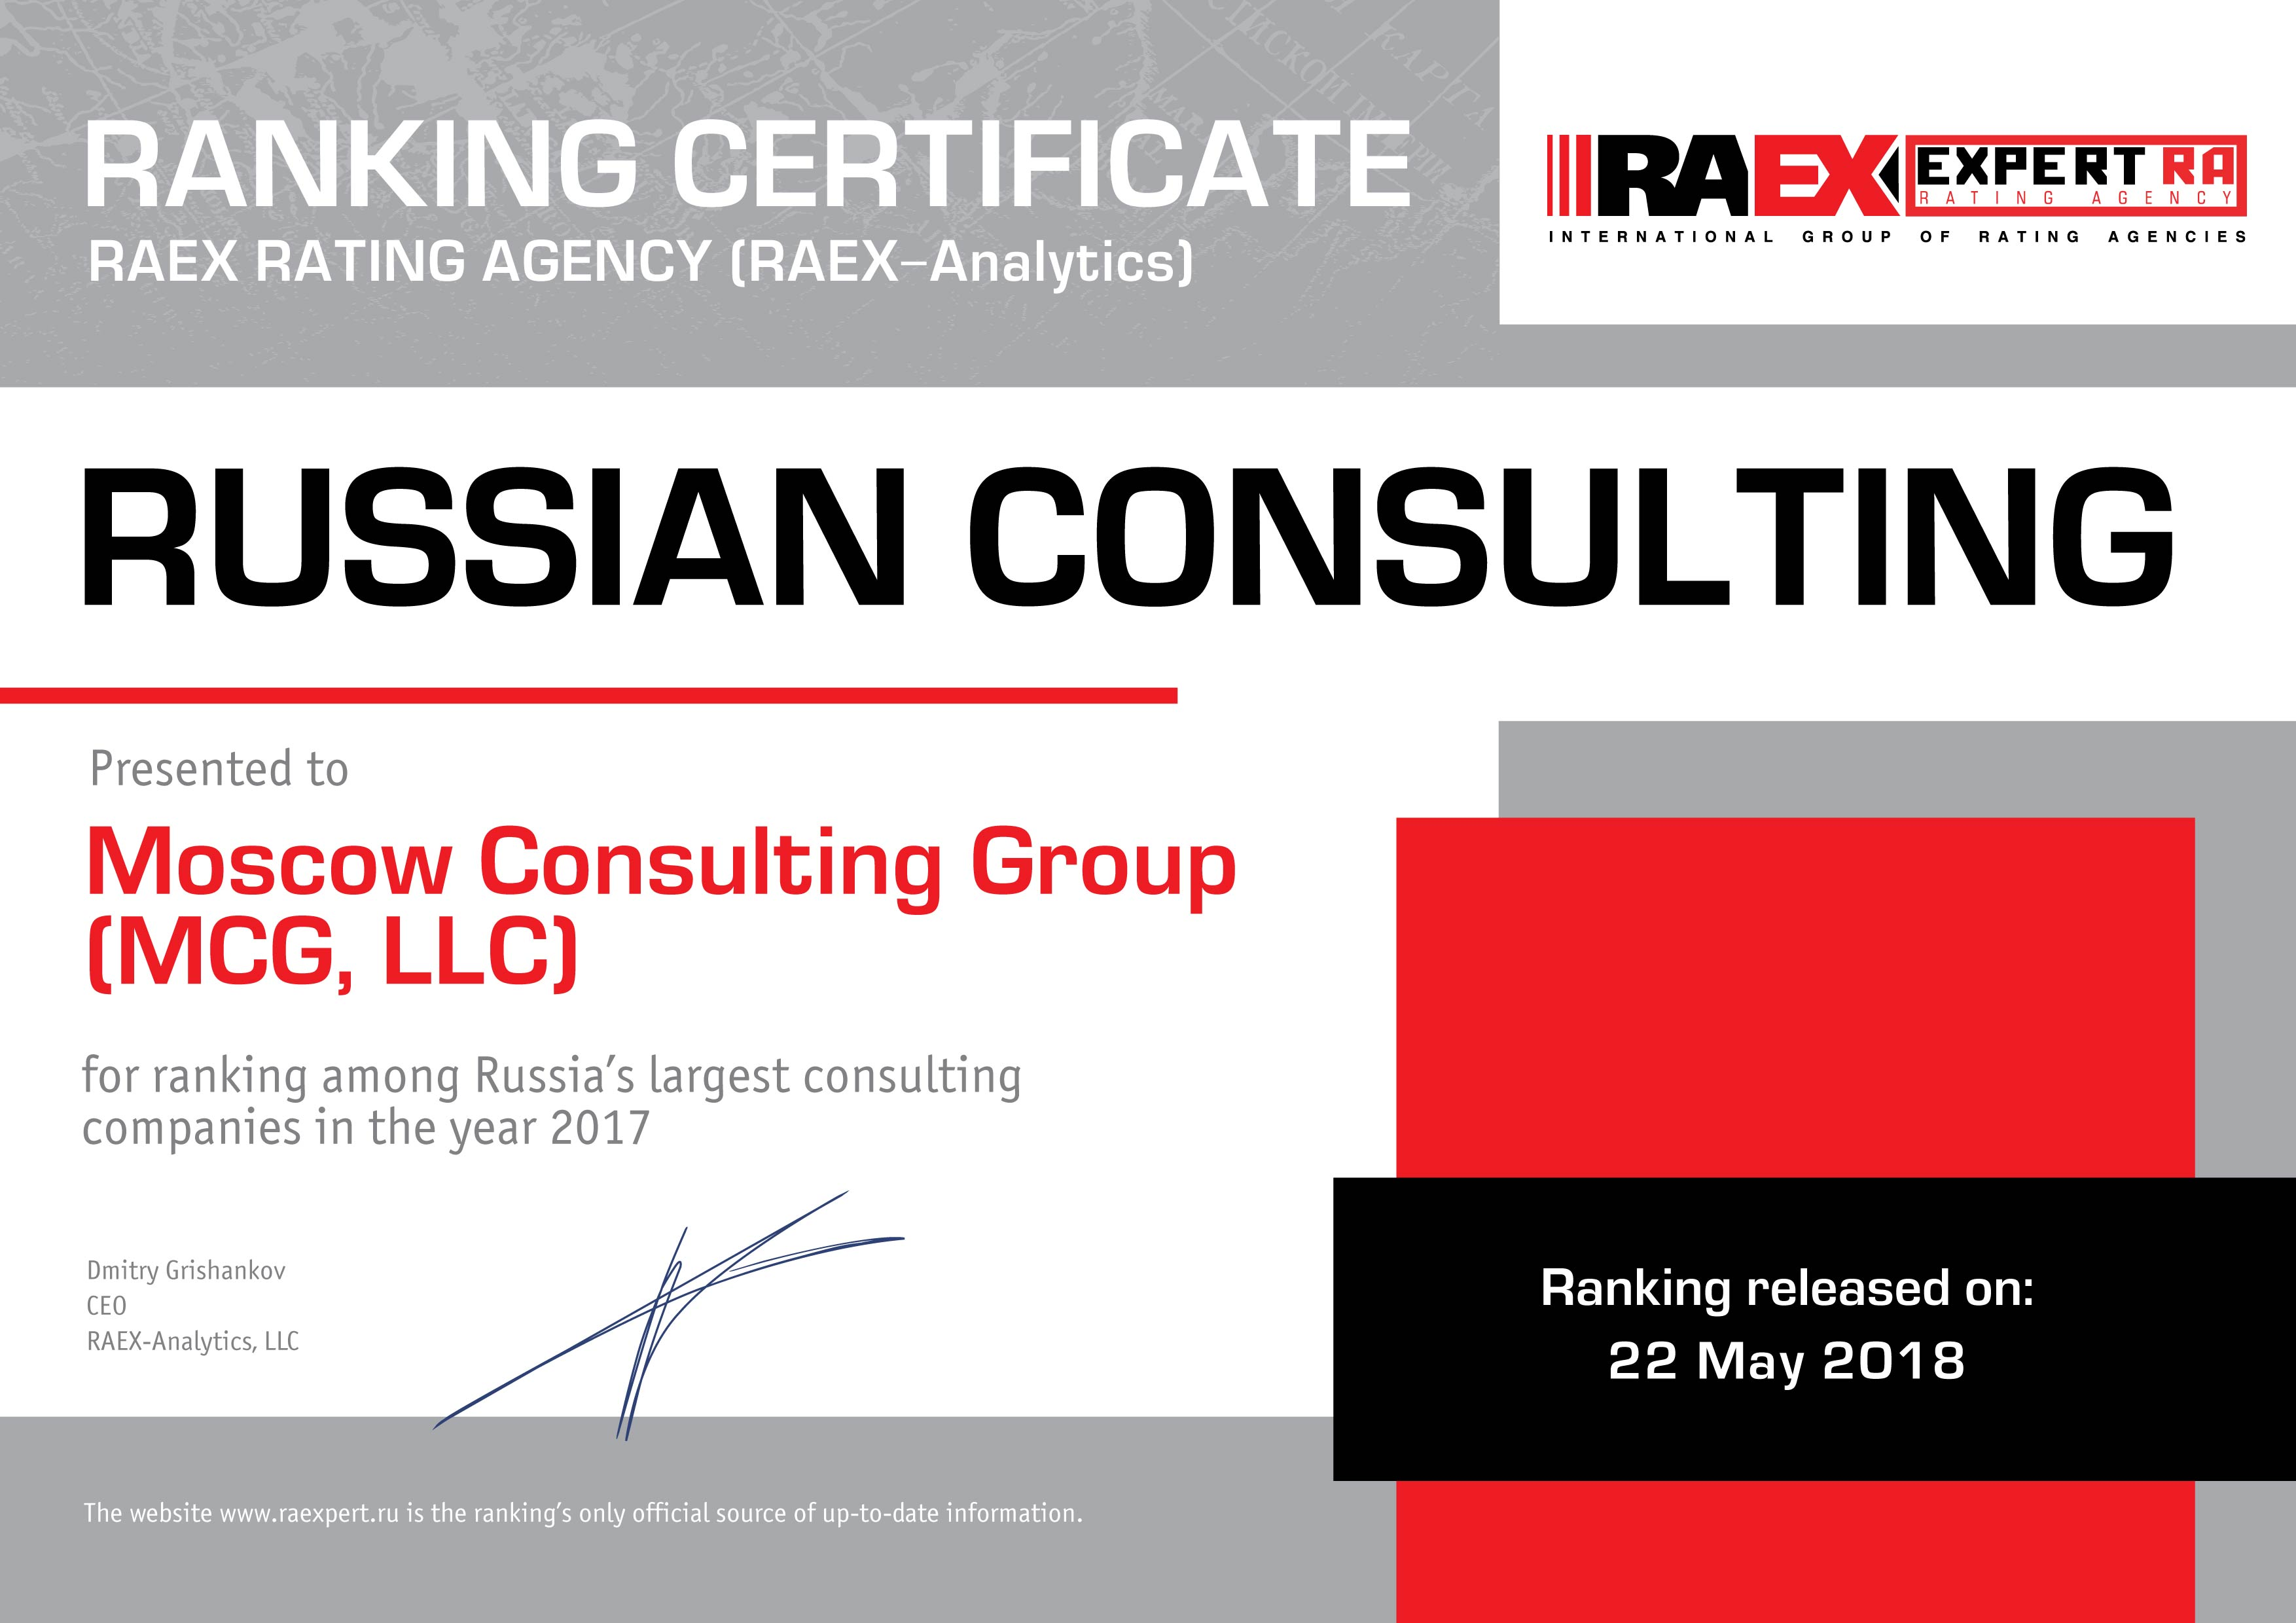 Moscow Consulting Group